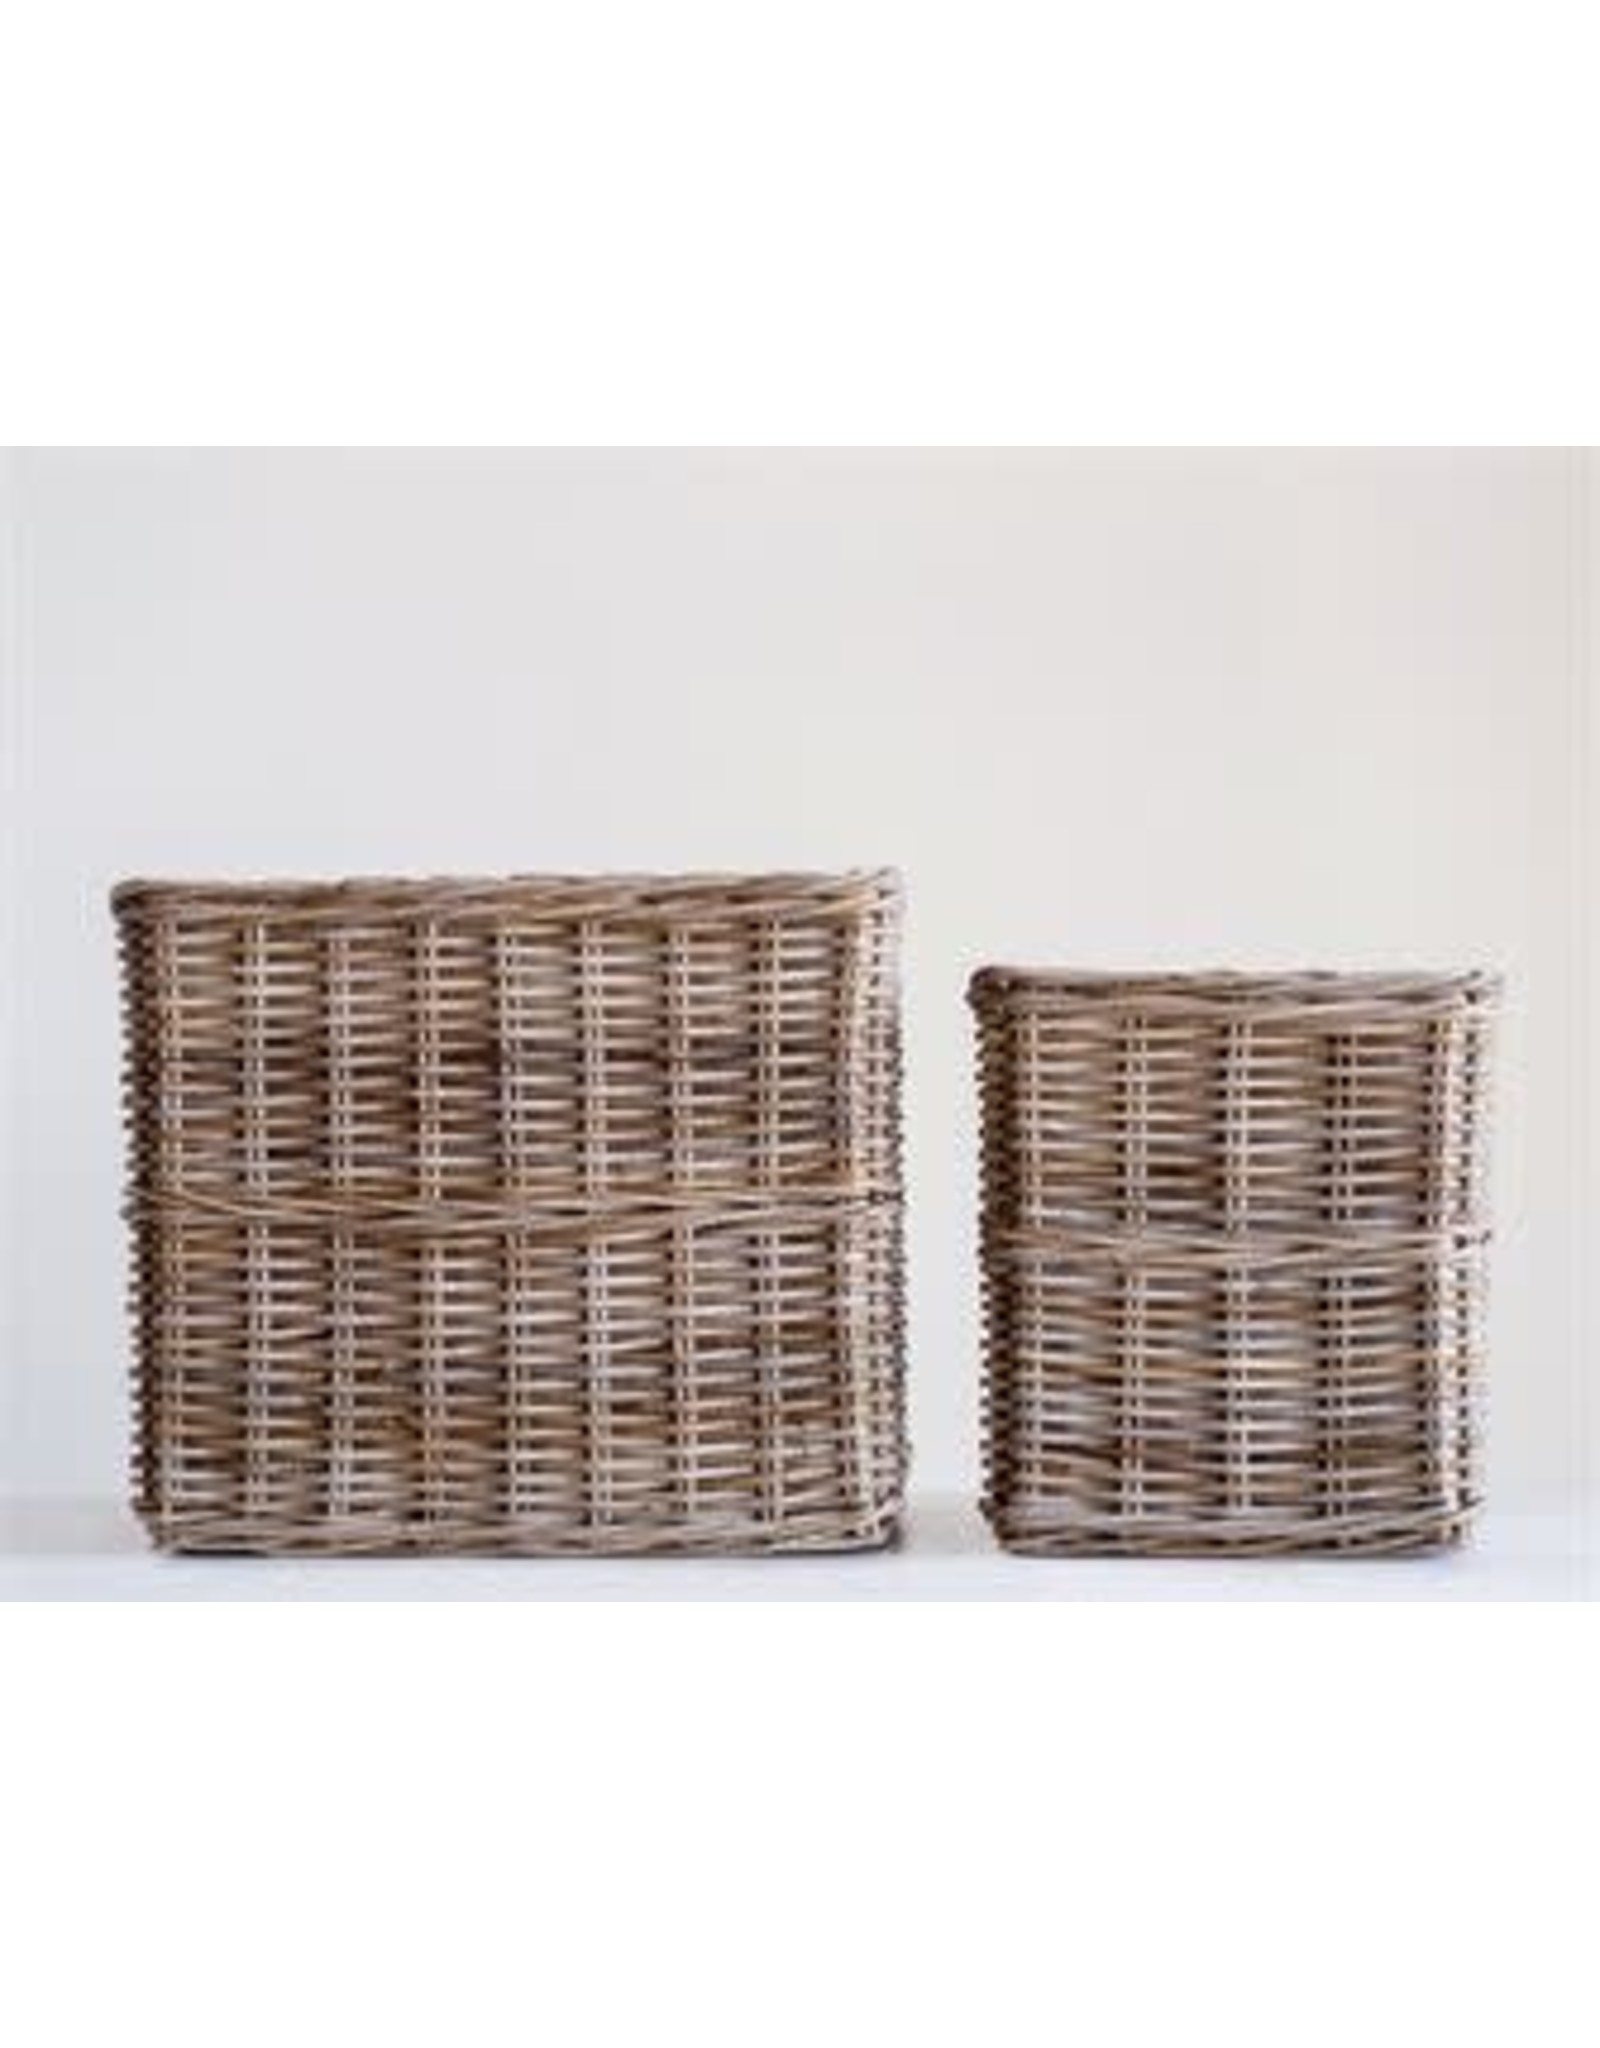 Square Natural Rattan Basket - large